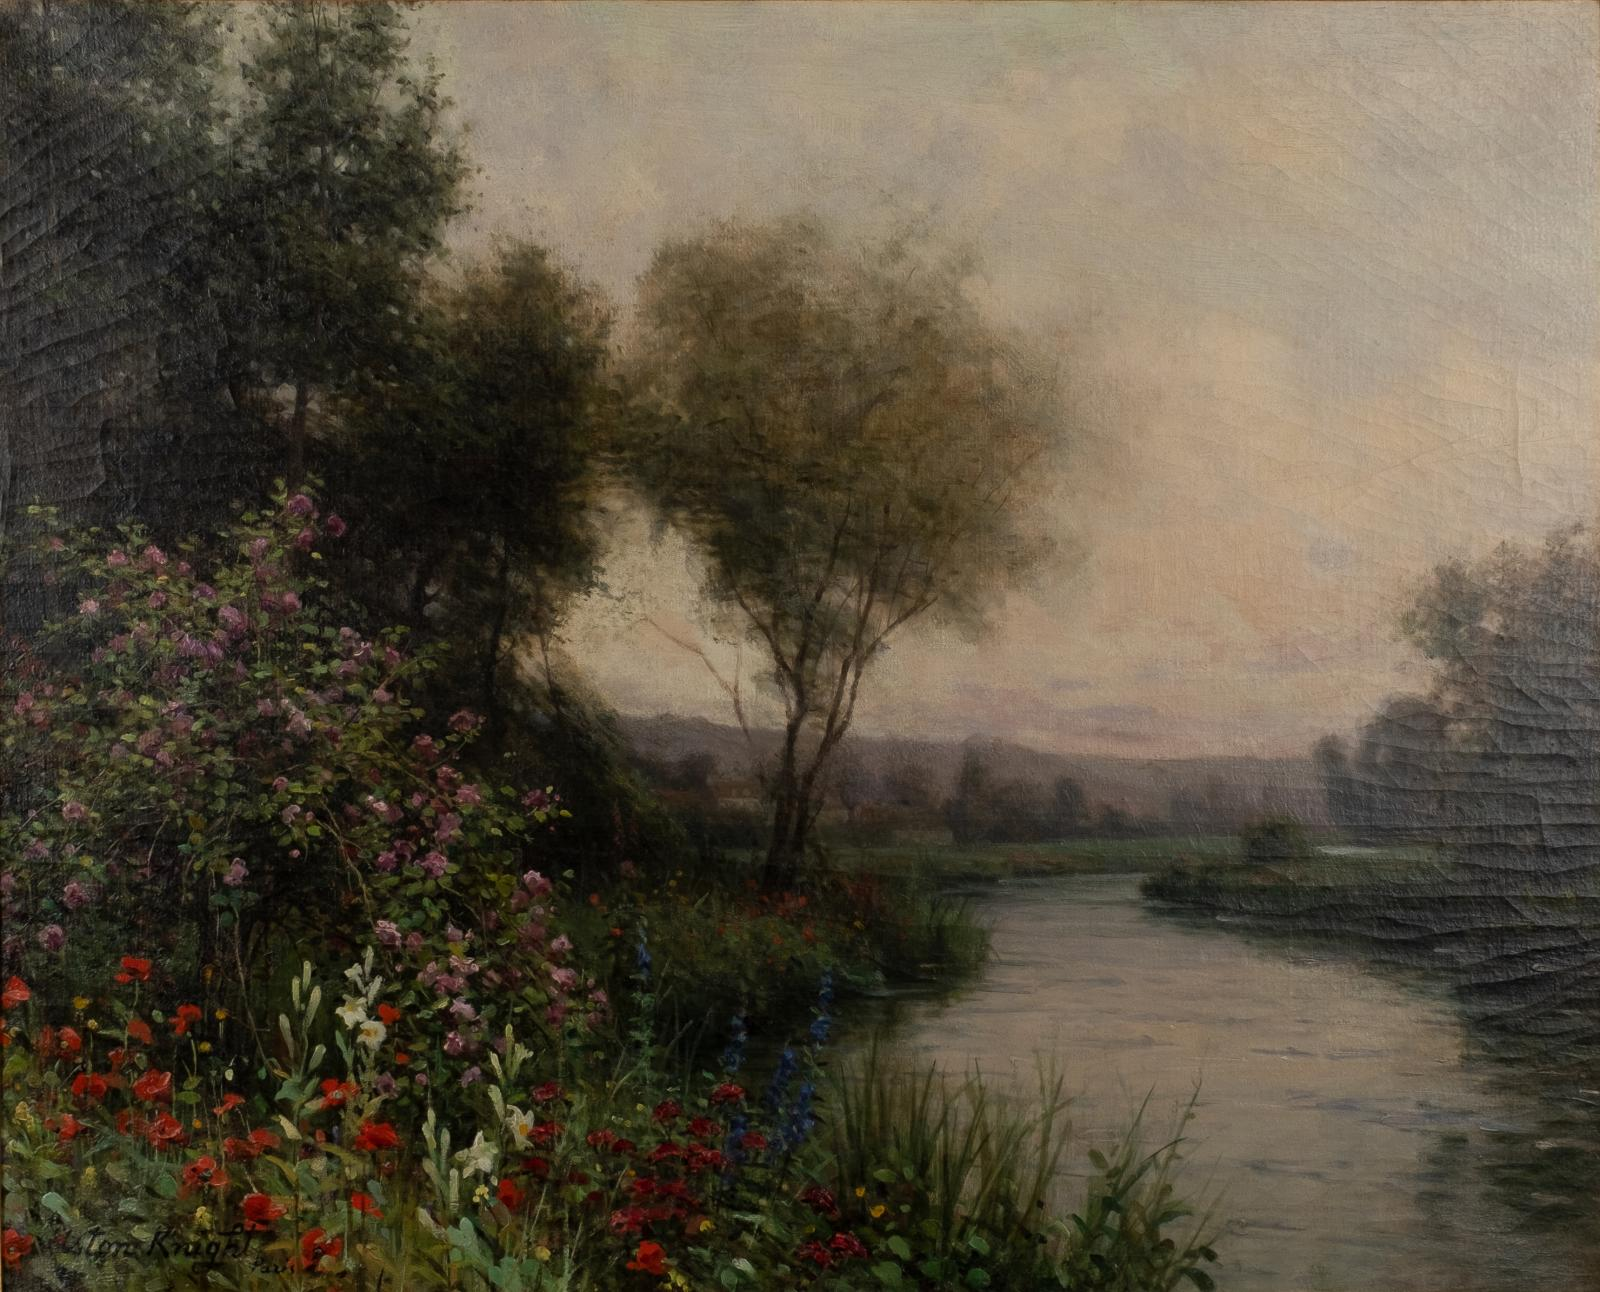 A lush landscape with a river on the right and trees and flowers on the left